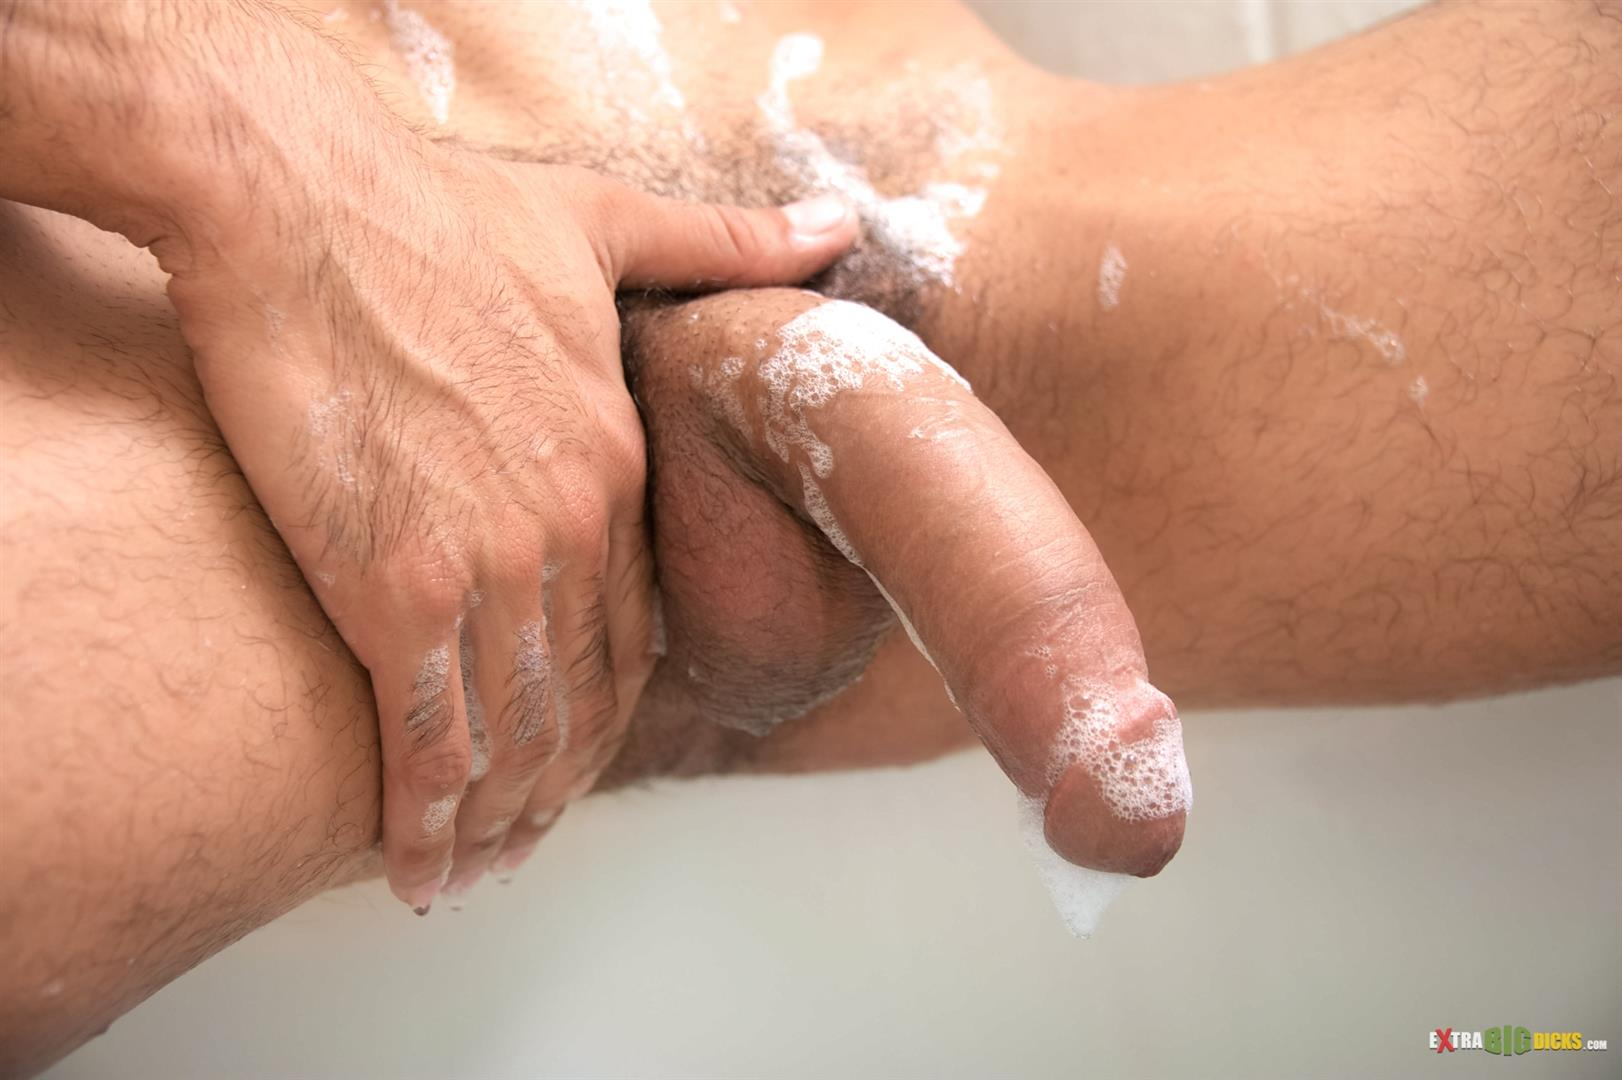 Extra Big Dicks Bobby Hart Hunk Jerking off Huge Cock in the Bathtub Amateur Gay Porn 06